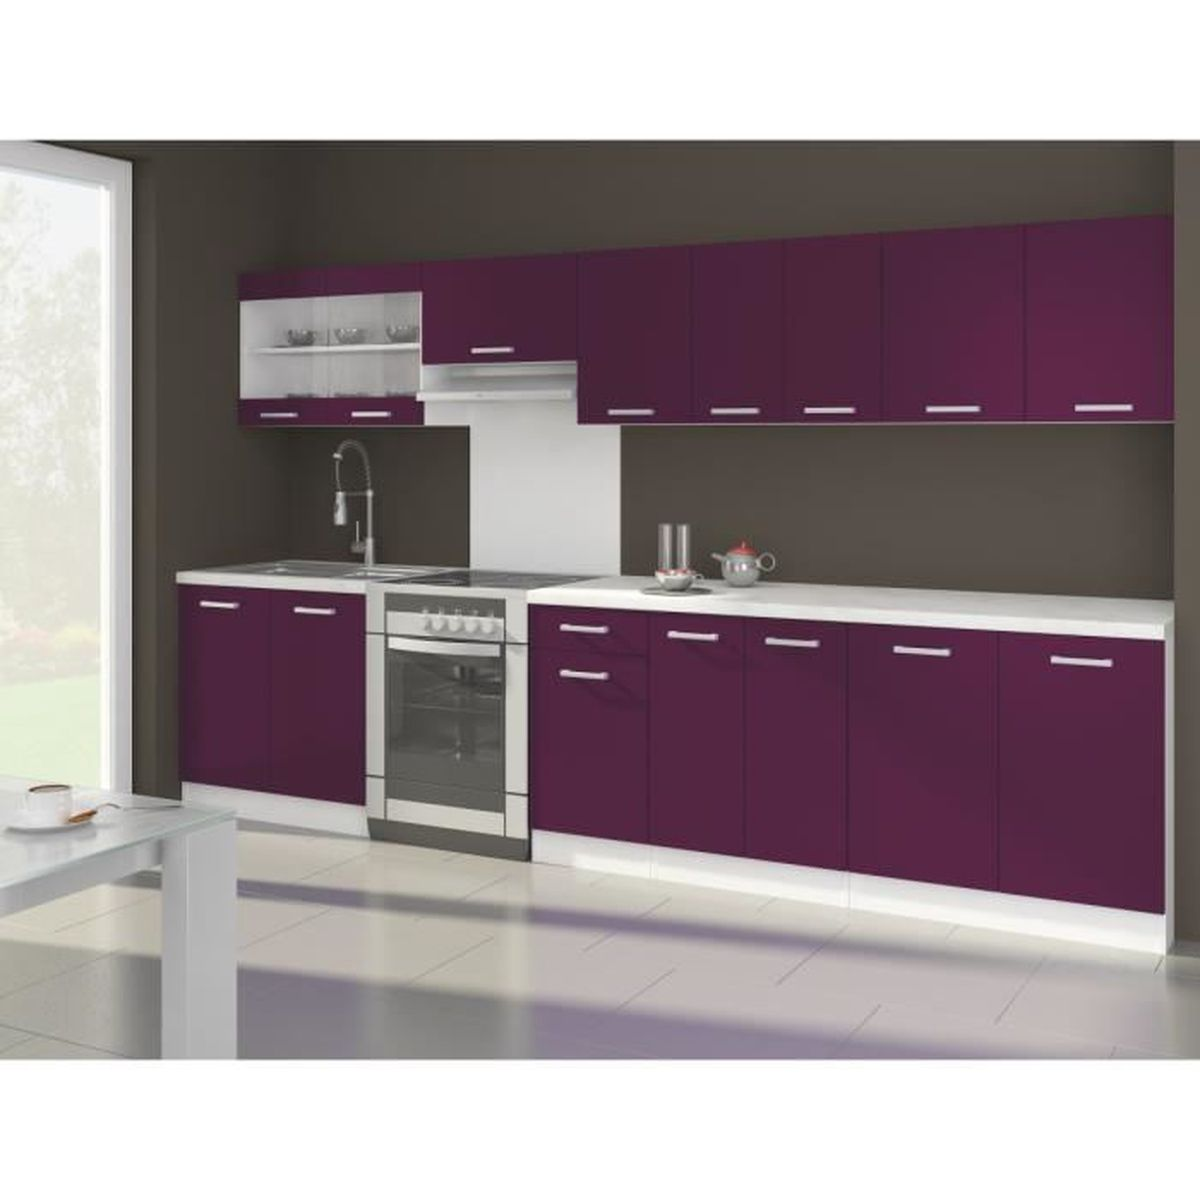 couleur aubergine cuisine gk49 jornalagora. Black Bedroom Furniture Sets. Home Design Ideas